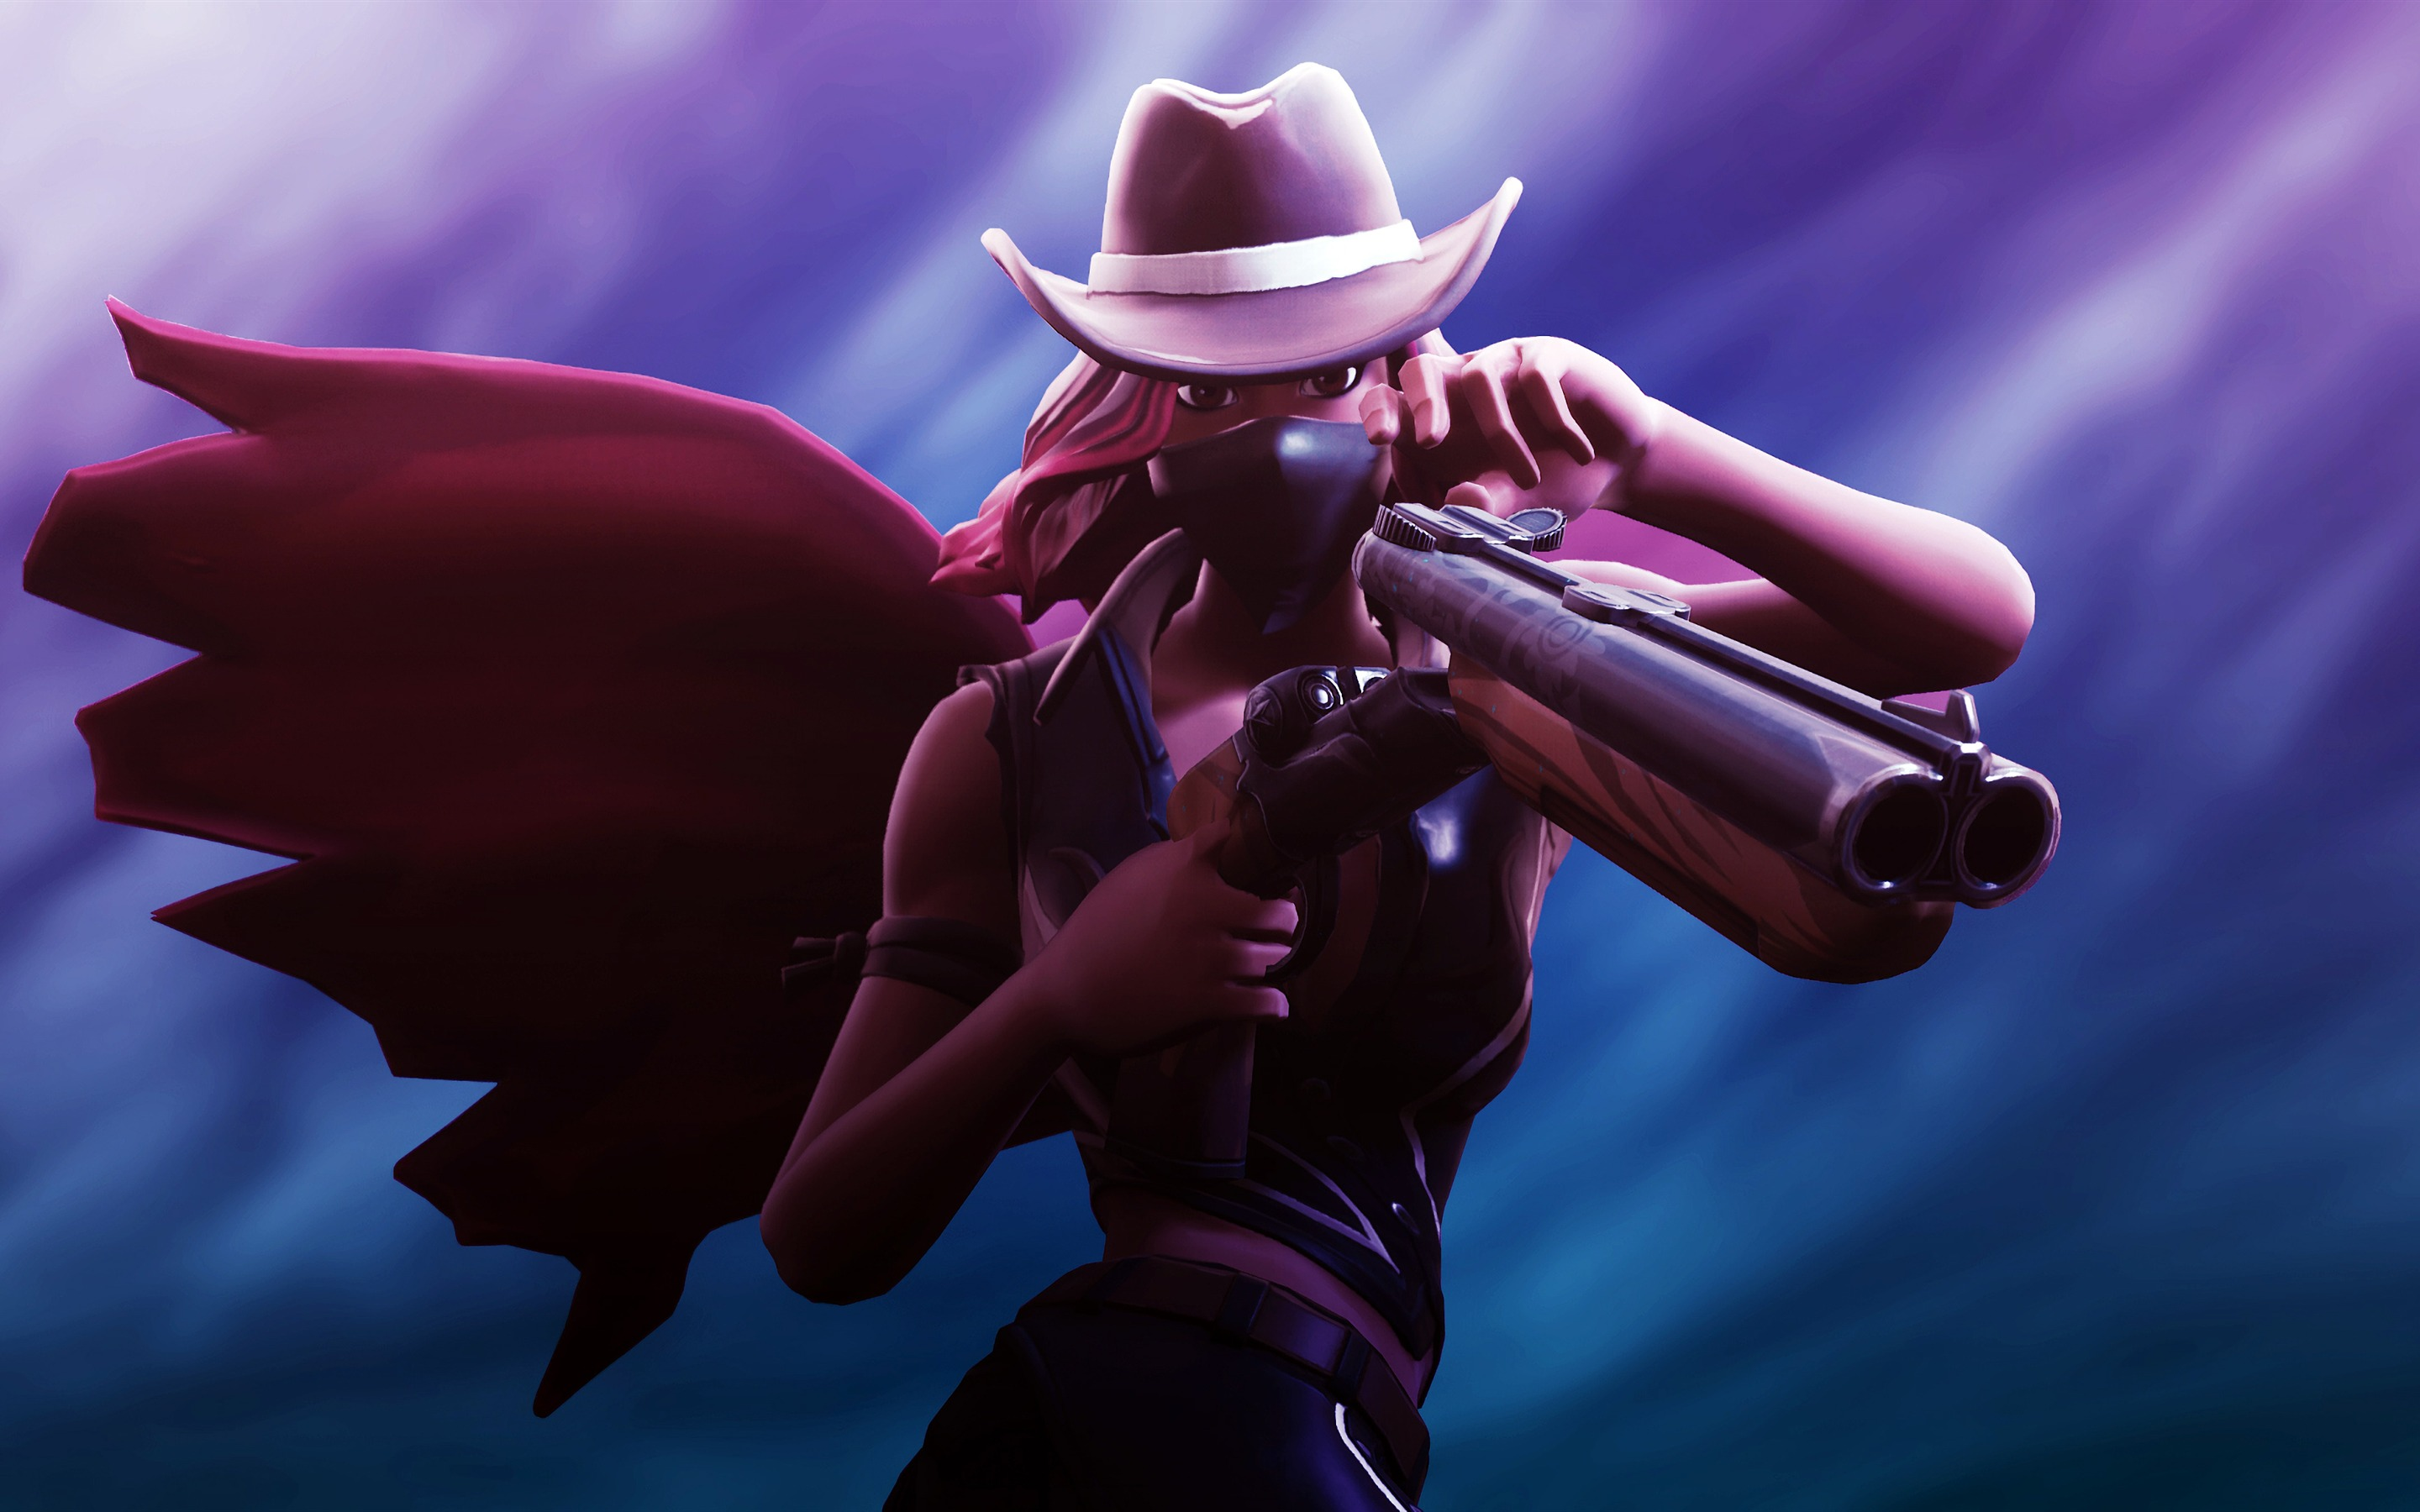 Calamity Fortnite Skin 2019 Hd Online Game Preview